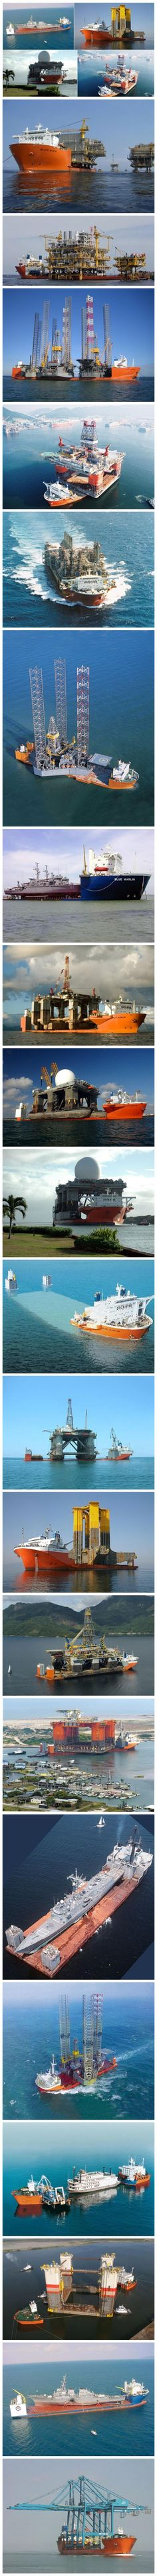 Blue Marlin & Dockwise, THE Ultimate heavy lift submersible ships of the open seas and the world....... ⚓️   ⚠️  ✨